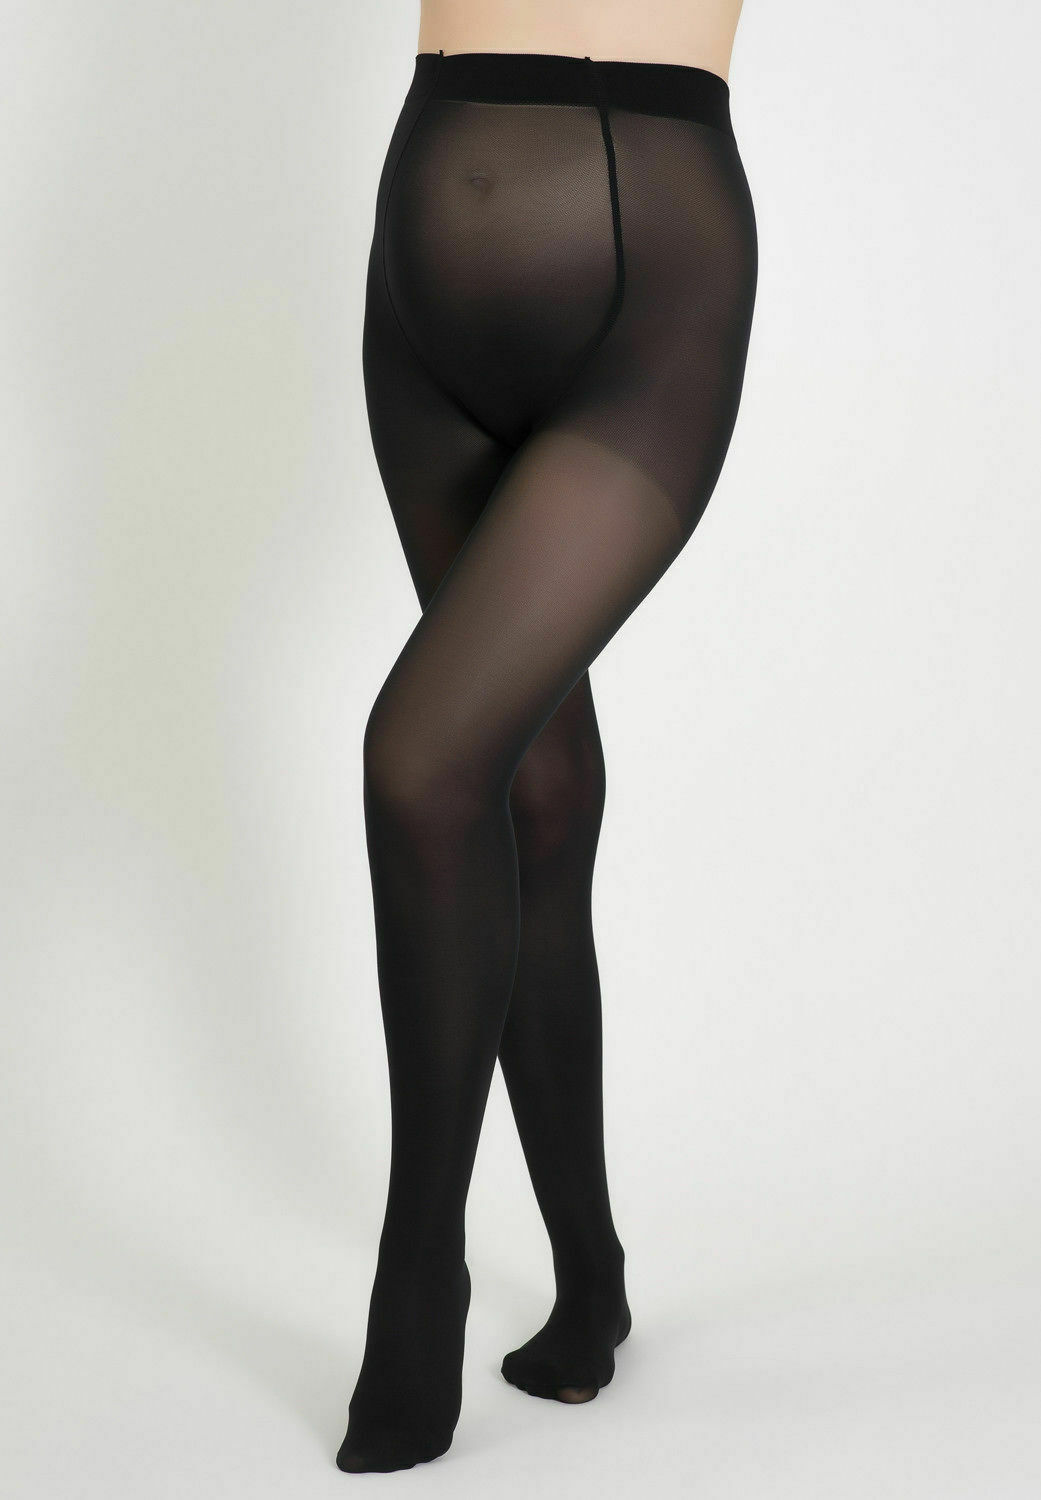 Bellissima-Women-039-s-Maternity-Tights-Black-50-den-Pregnancy-Hosiery thumbnail 15